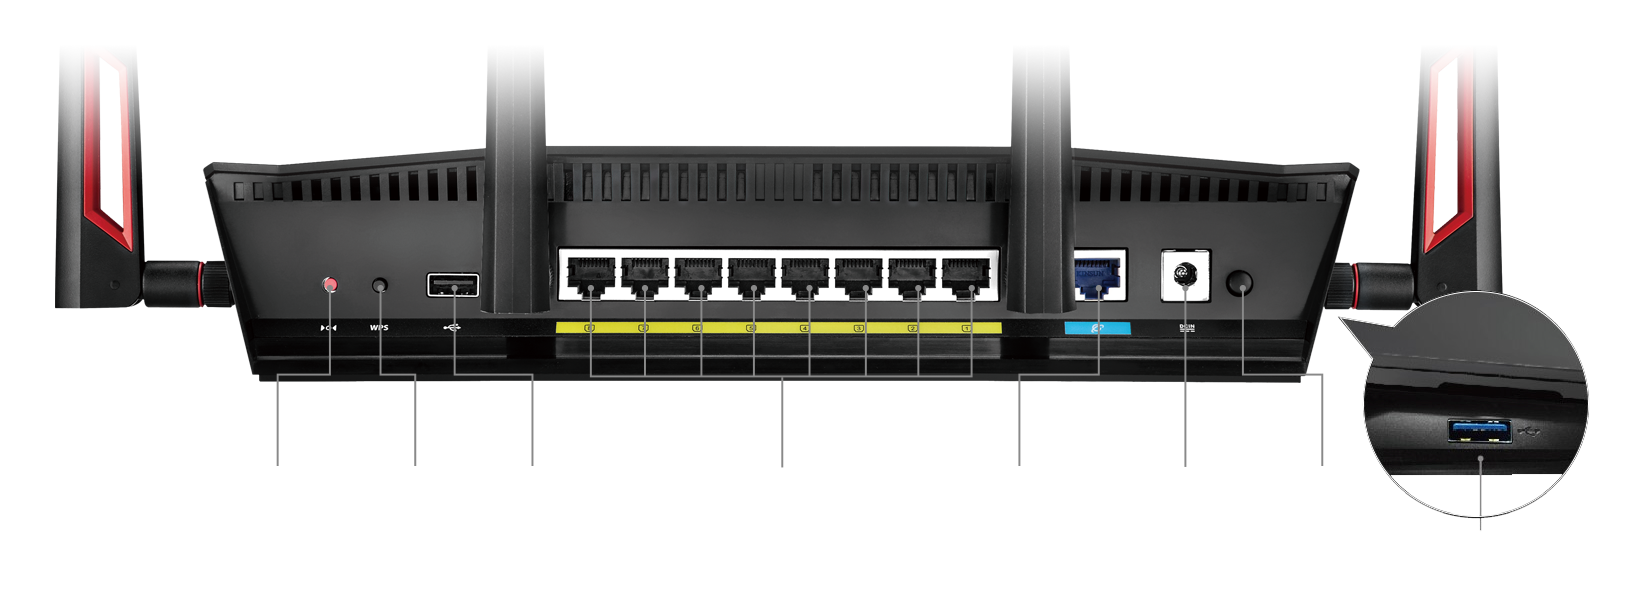 8 Gigabit LAN ports – twice the number most routers provide – making RT-AC88U your digital home hub